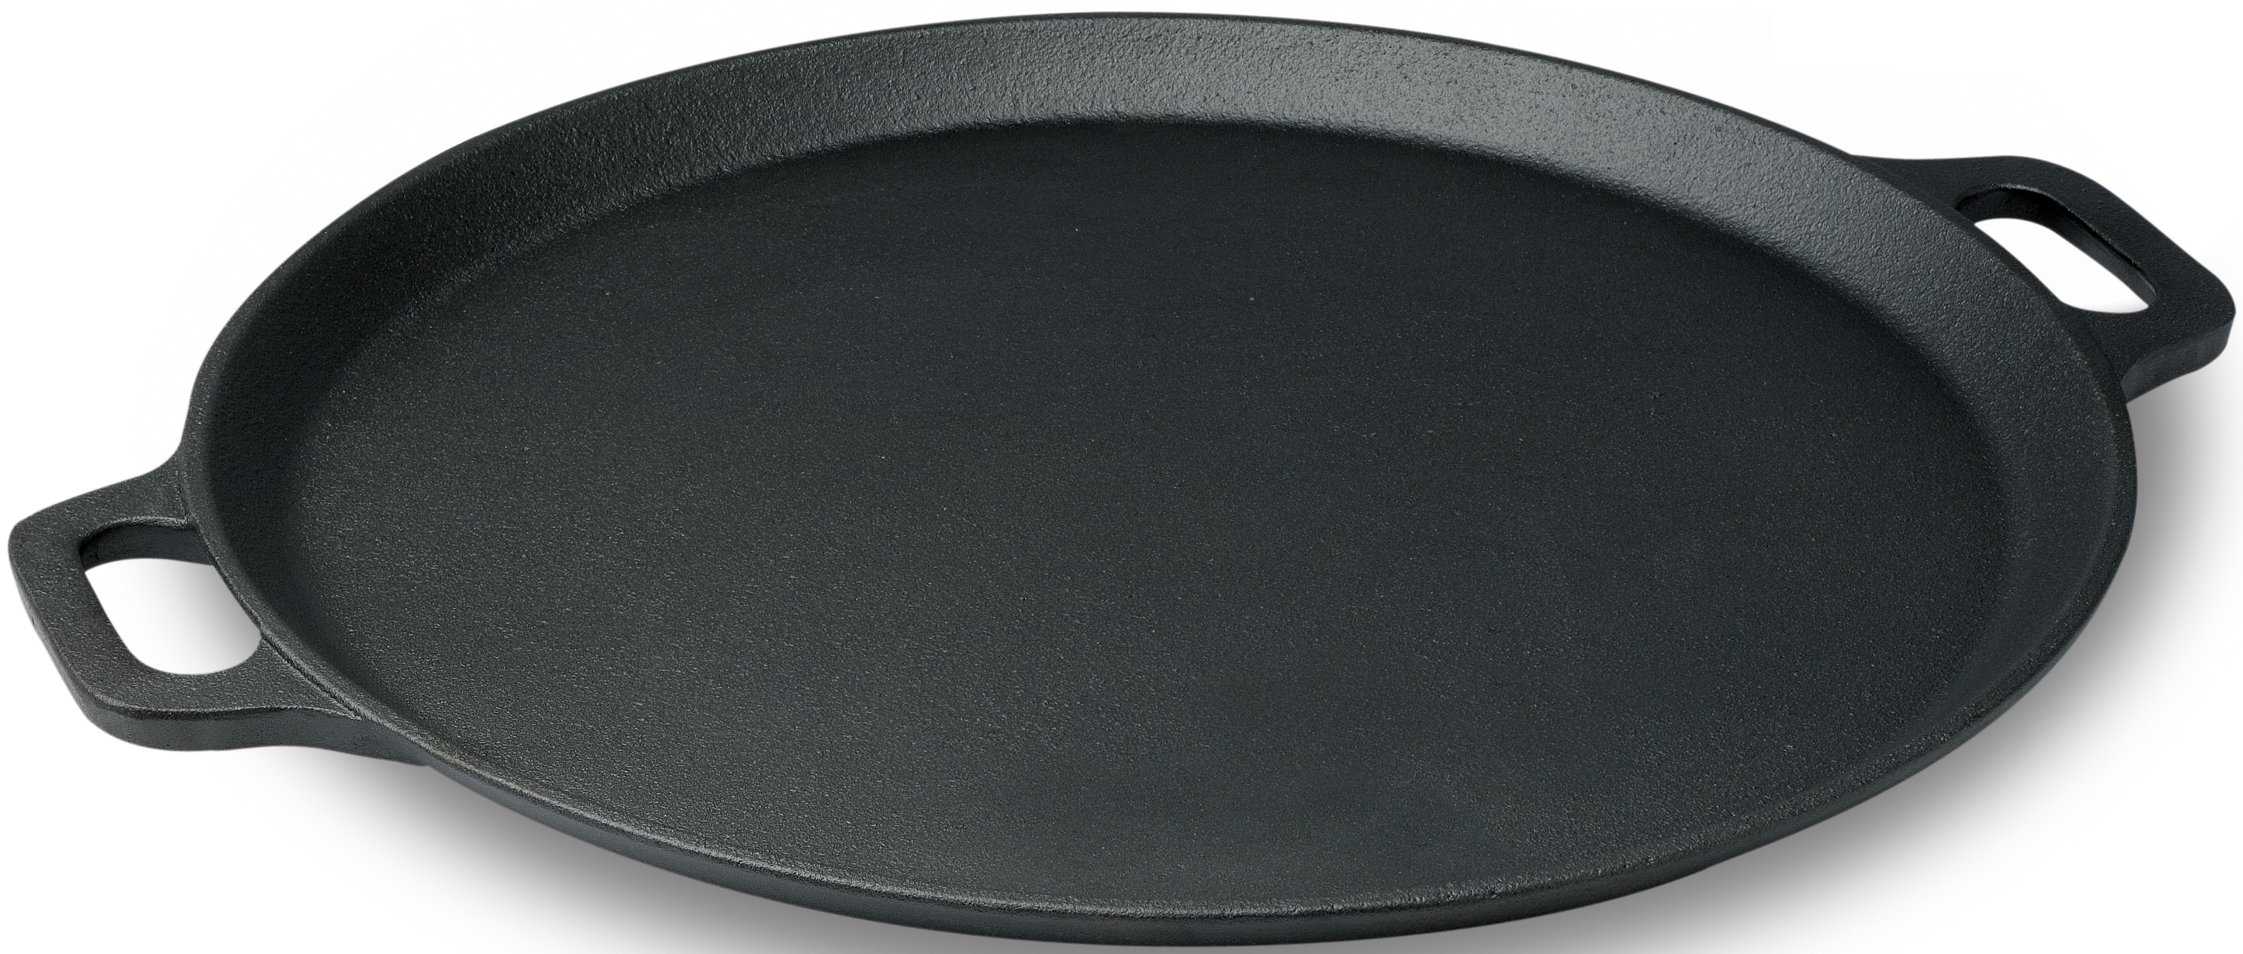 Emeril Pre-Seasoned Cast Iron Pizza Pan / Round Griddle, 13-Inch, Black